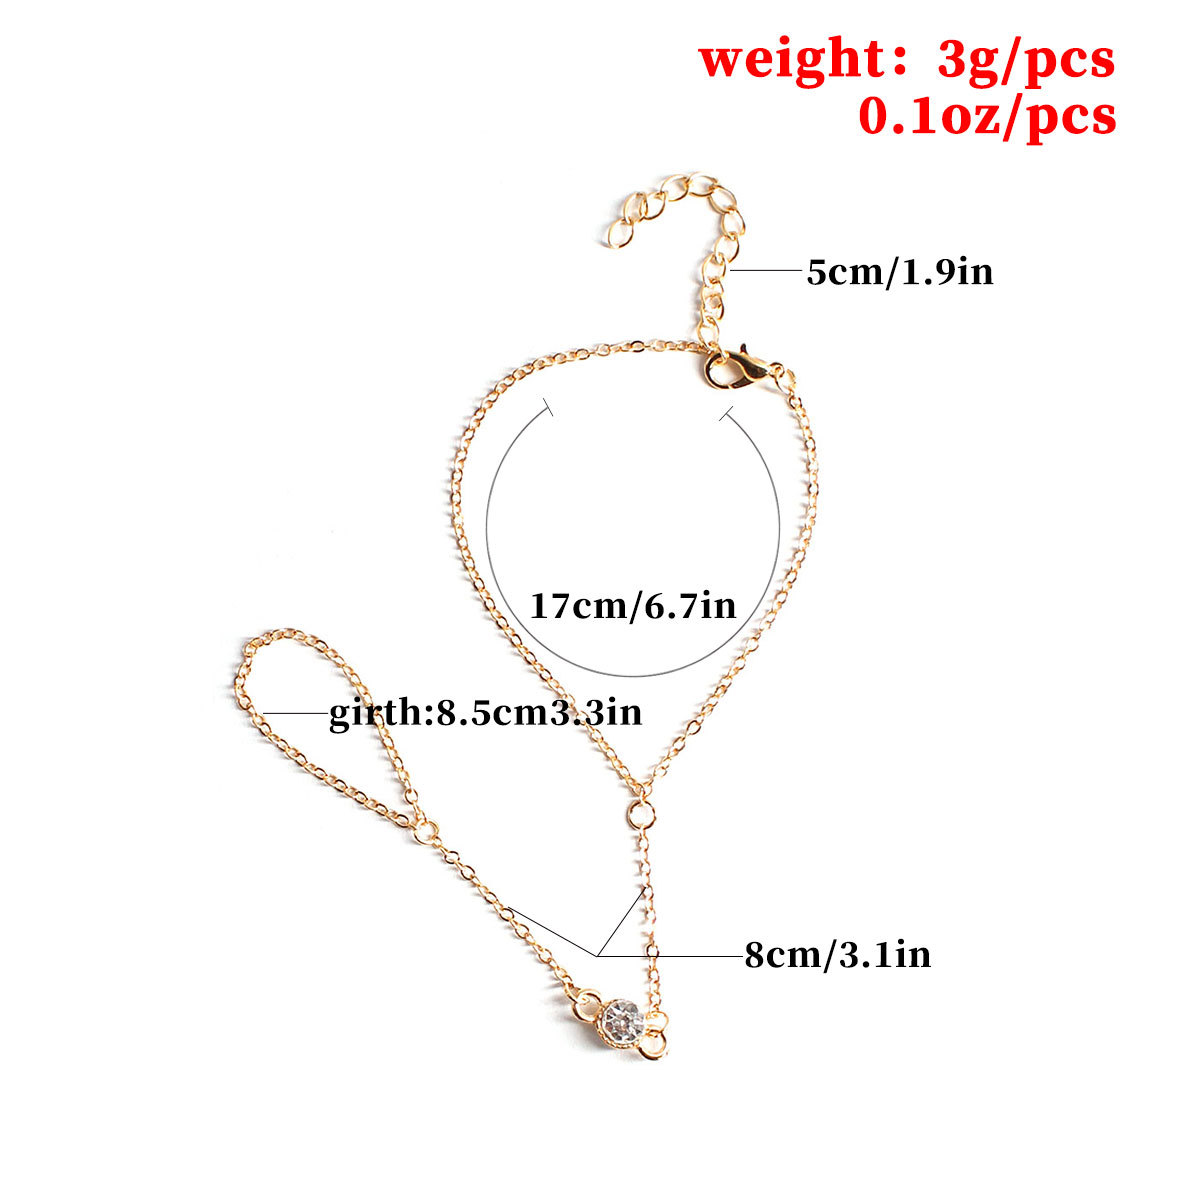 Fashion Inlaid Crystal Finger Chain Bracelet Female Slave Linked Charm Bracelets for Women Hand Accessories L131 in Charm Bracelets from Jewelry Accessories